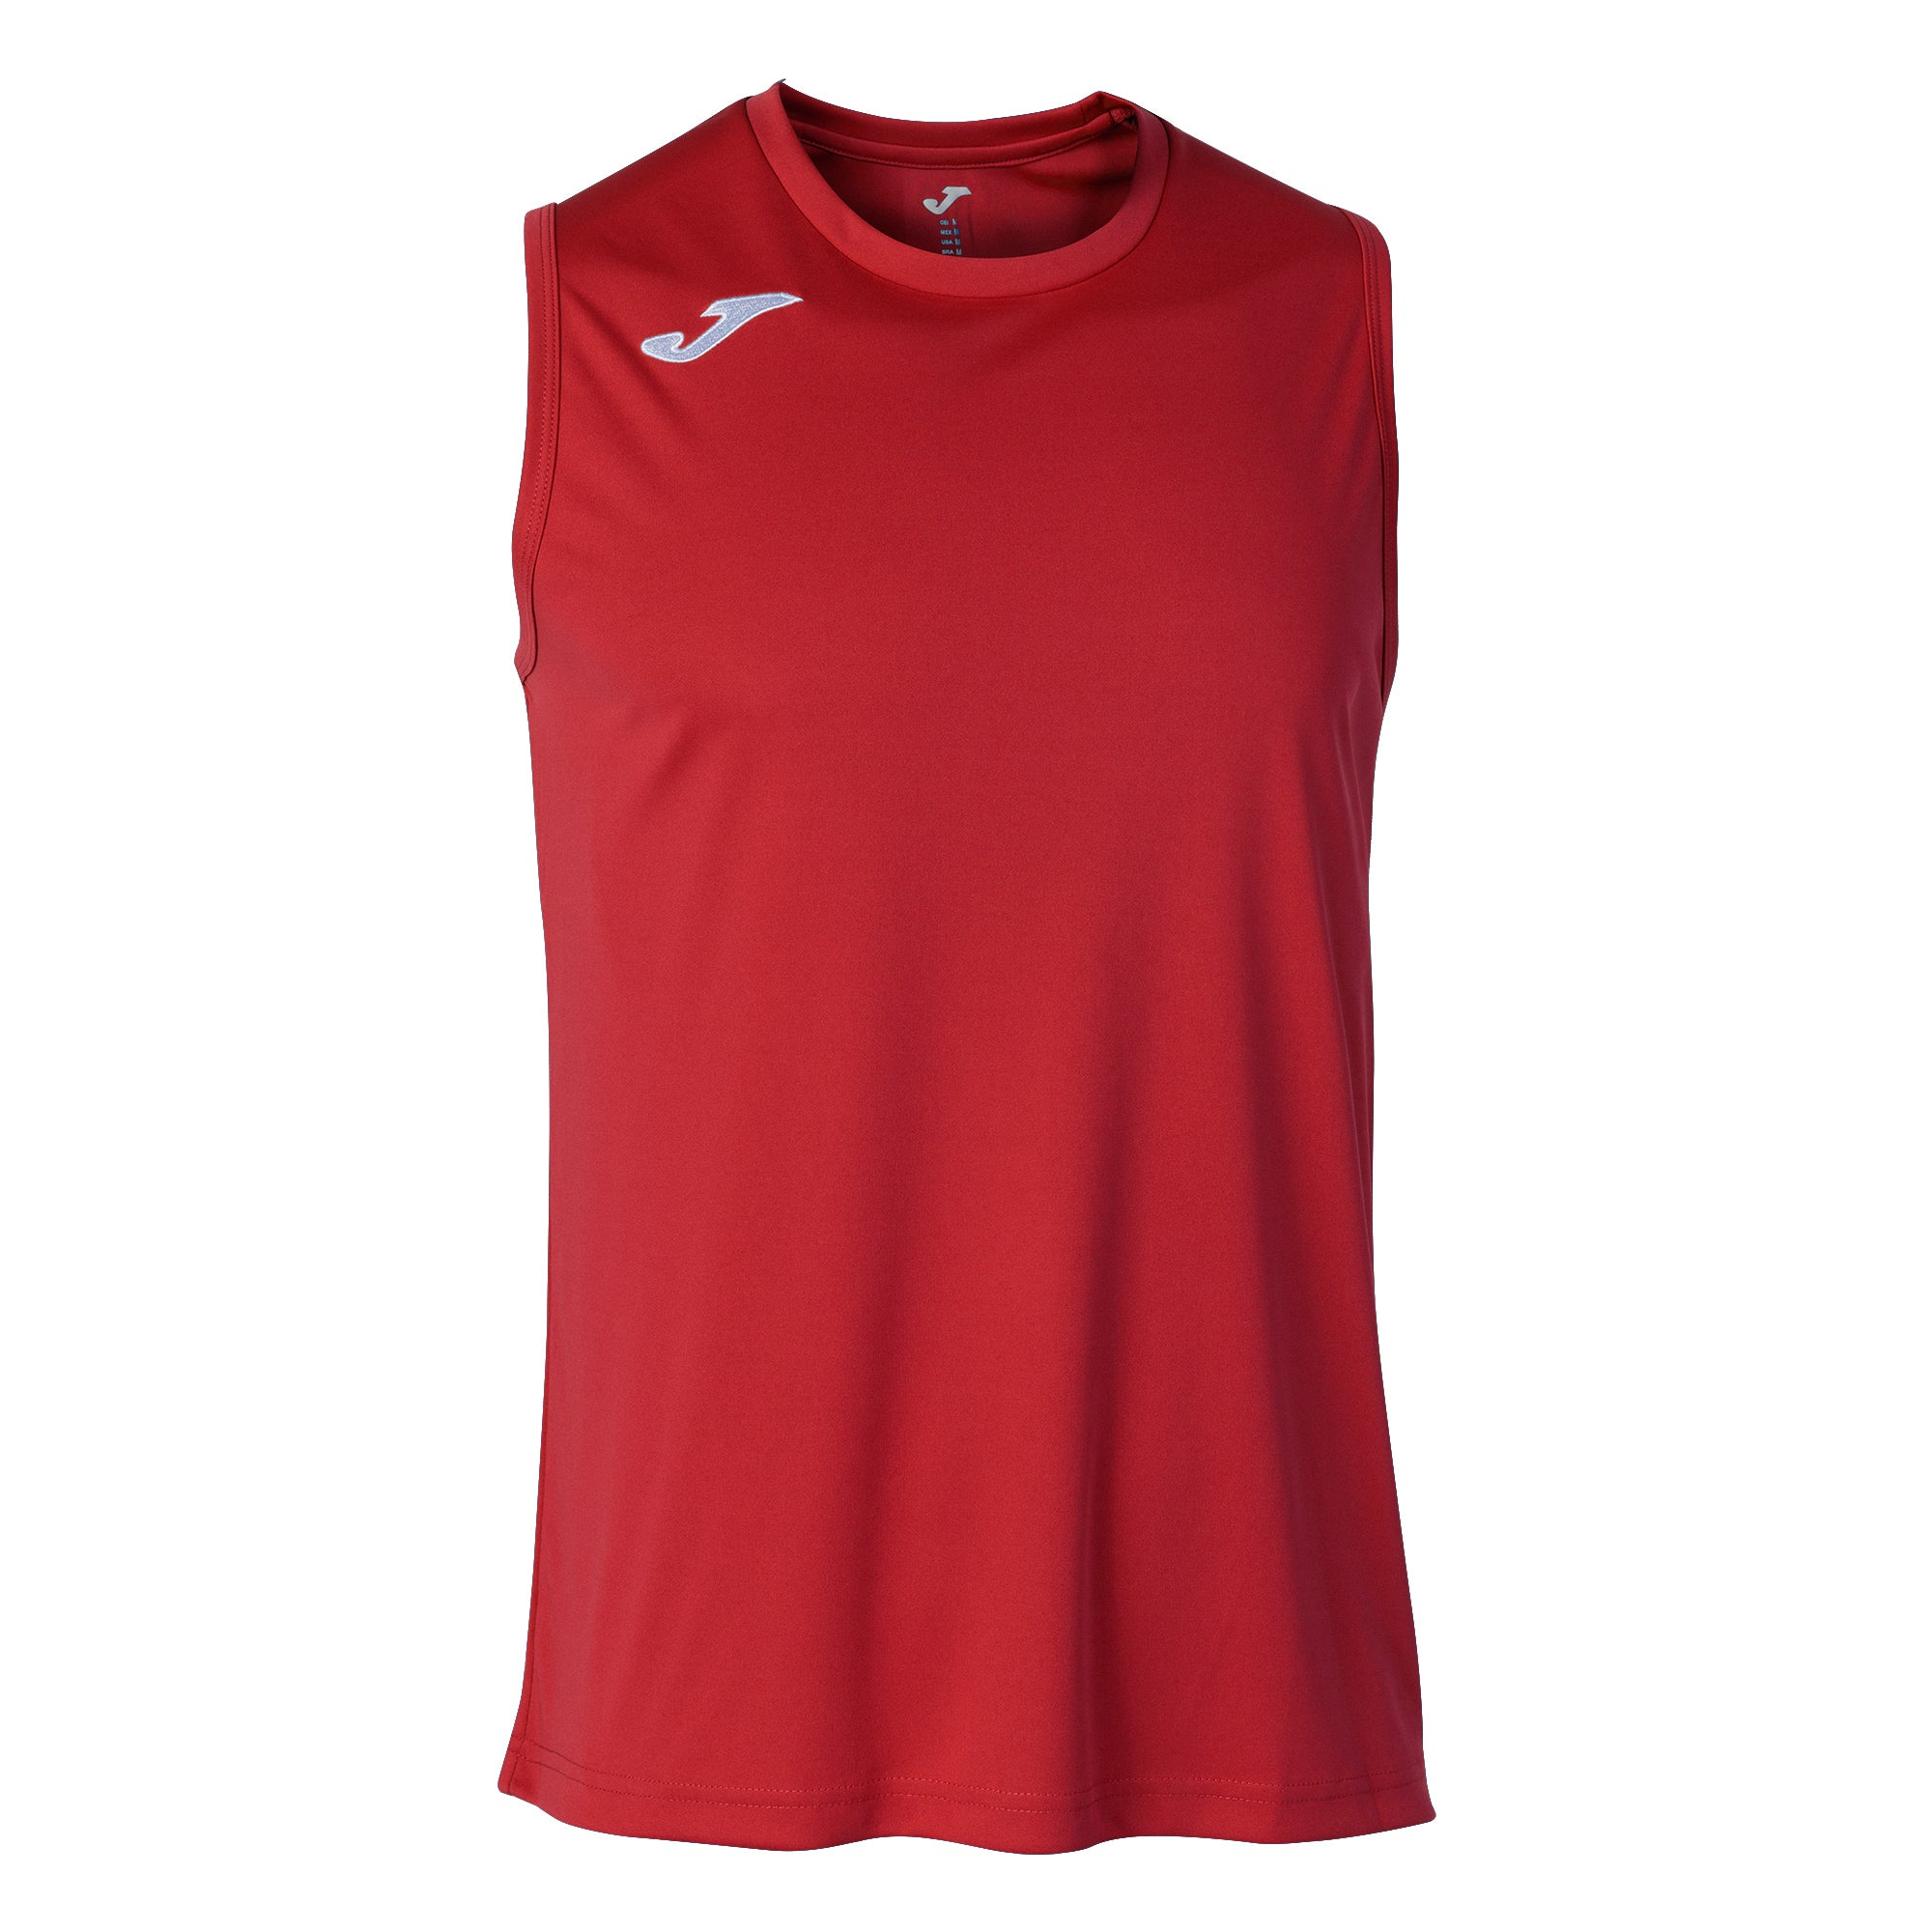 Teamwear - Joma Combi Sleeveless - Red - JO-101660-600